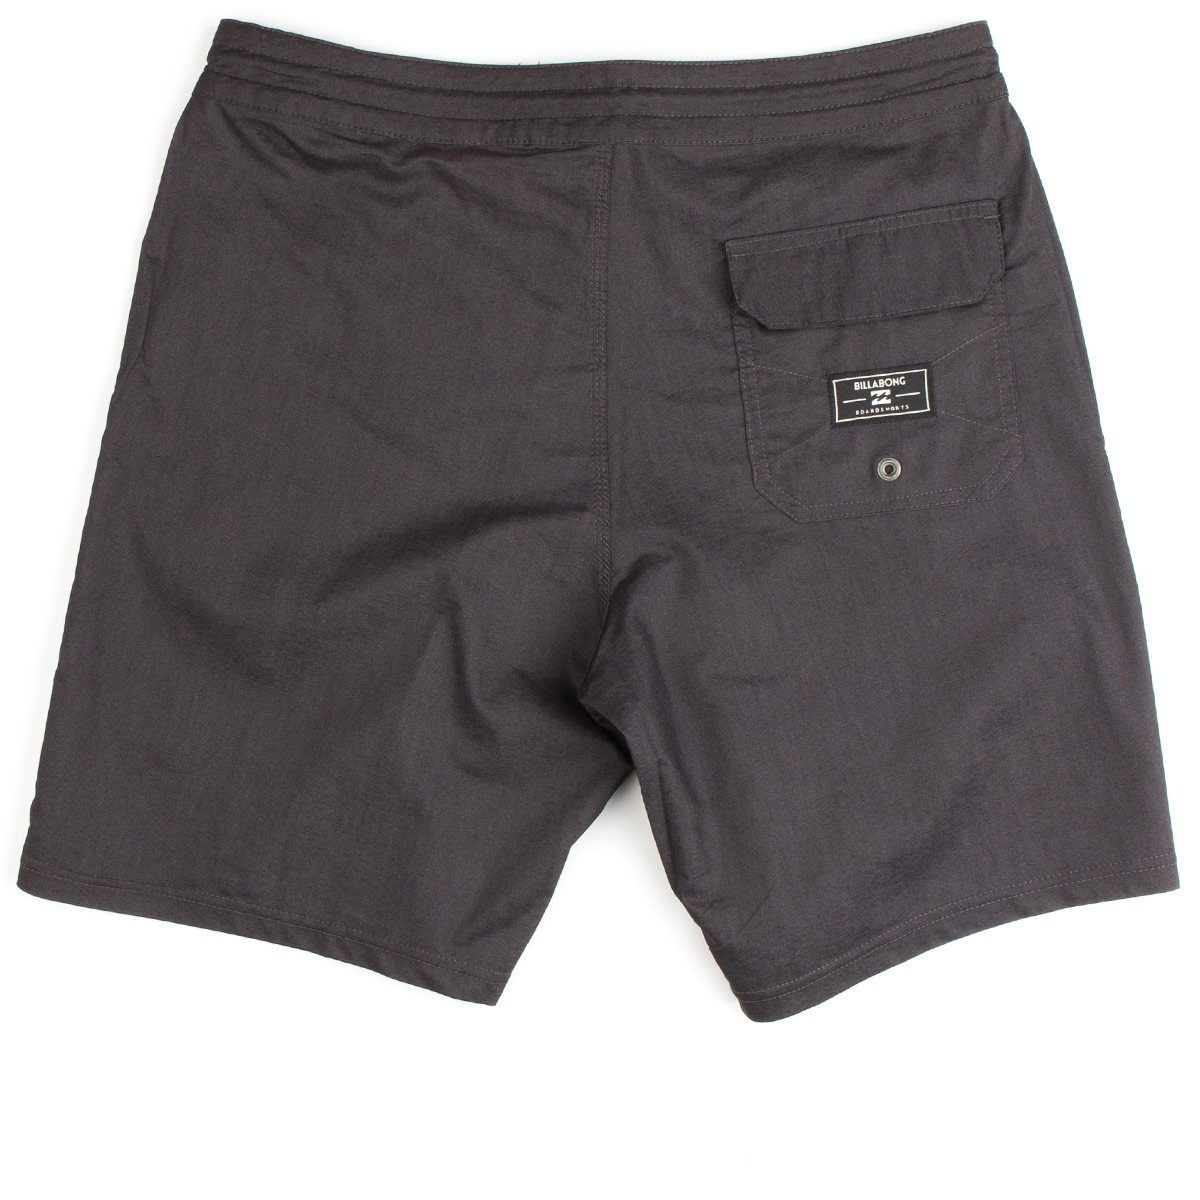 Billabong All Day Lo Tides Boardshorts - Black 06ef0e70c